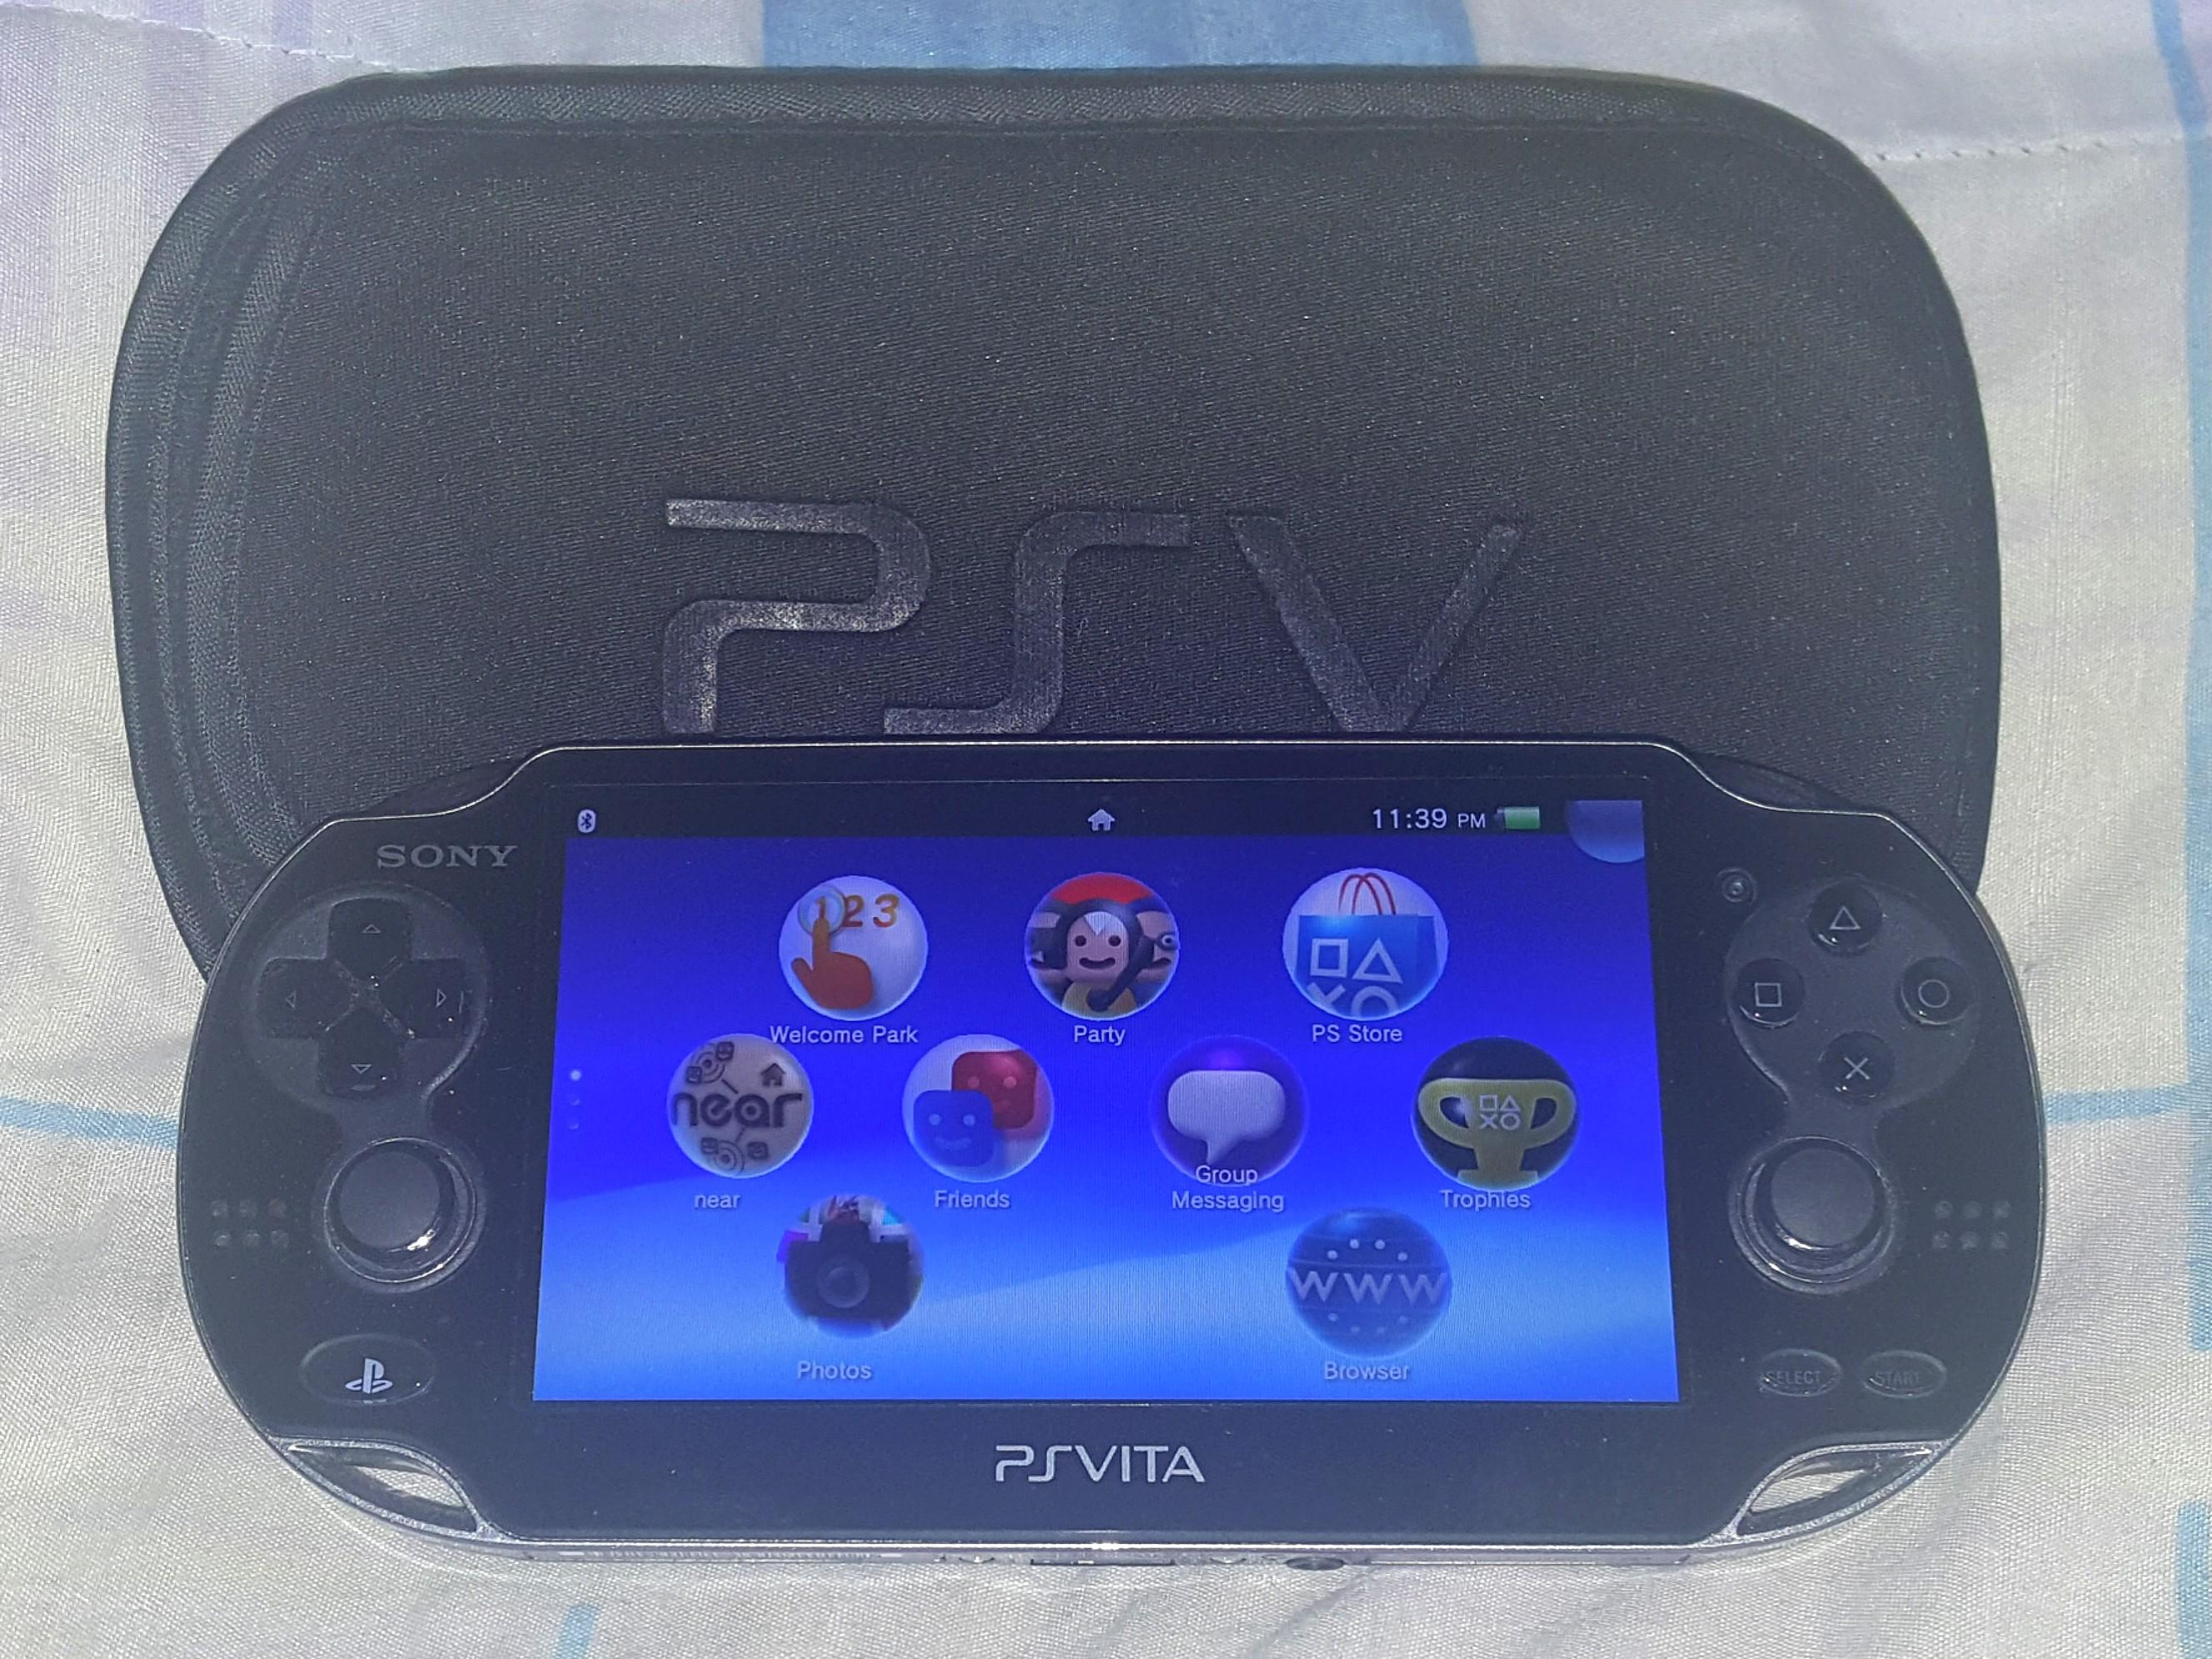 Ps Vita, 1006 Model. No Have Charger!.  Have 4gb sd card inside, and 3 ps vita games installed in the Vita & Cover. 100% Work Ps Vita!